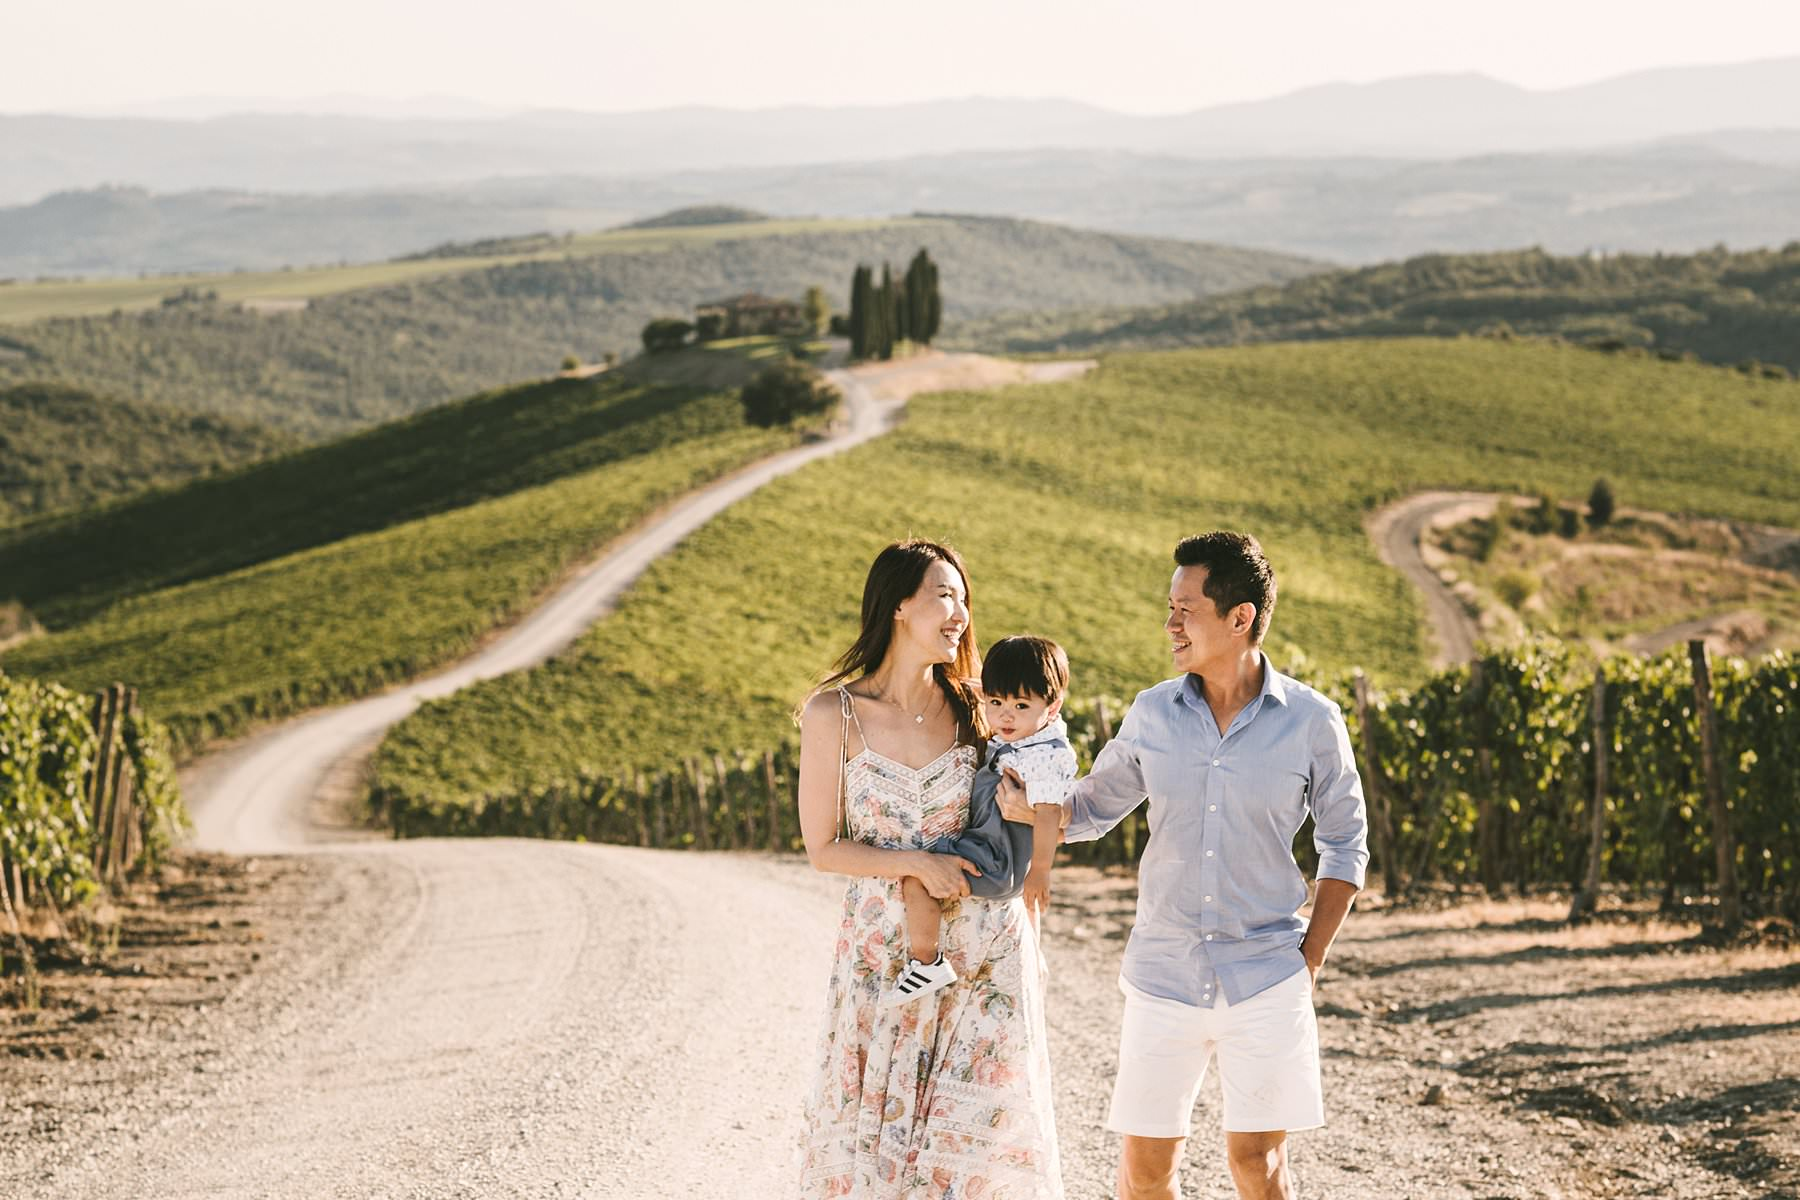 The marvelous vineyard of Rosewood Castiglion del Bosco. Serena and Kelvin, wife and husband from Singapore, chose Tuscany as the destination of a relaxing holiday with their littlest love: their son. Since he was so young, they decided to contact me for a family holiday photoshoot so that the memory of those days would live forever – for all of them. We met at the location where they were staying, Rosewood Castiglion del Bosco, and I guided them through a simple but meaningful photo session. When one of the protagonists is so young, it can be tricky to keep him focused and entertained throughout the shooting: that's why is always better to hire an experienced photographer